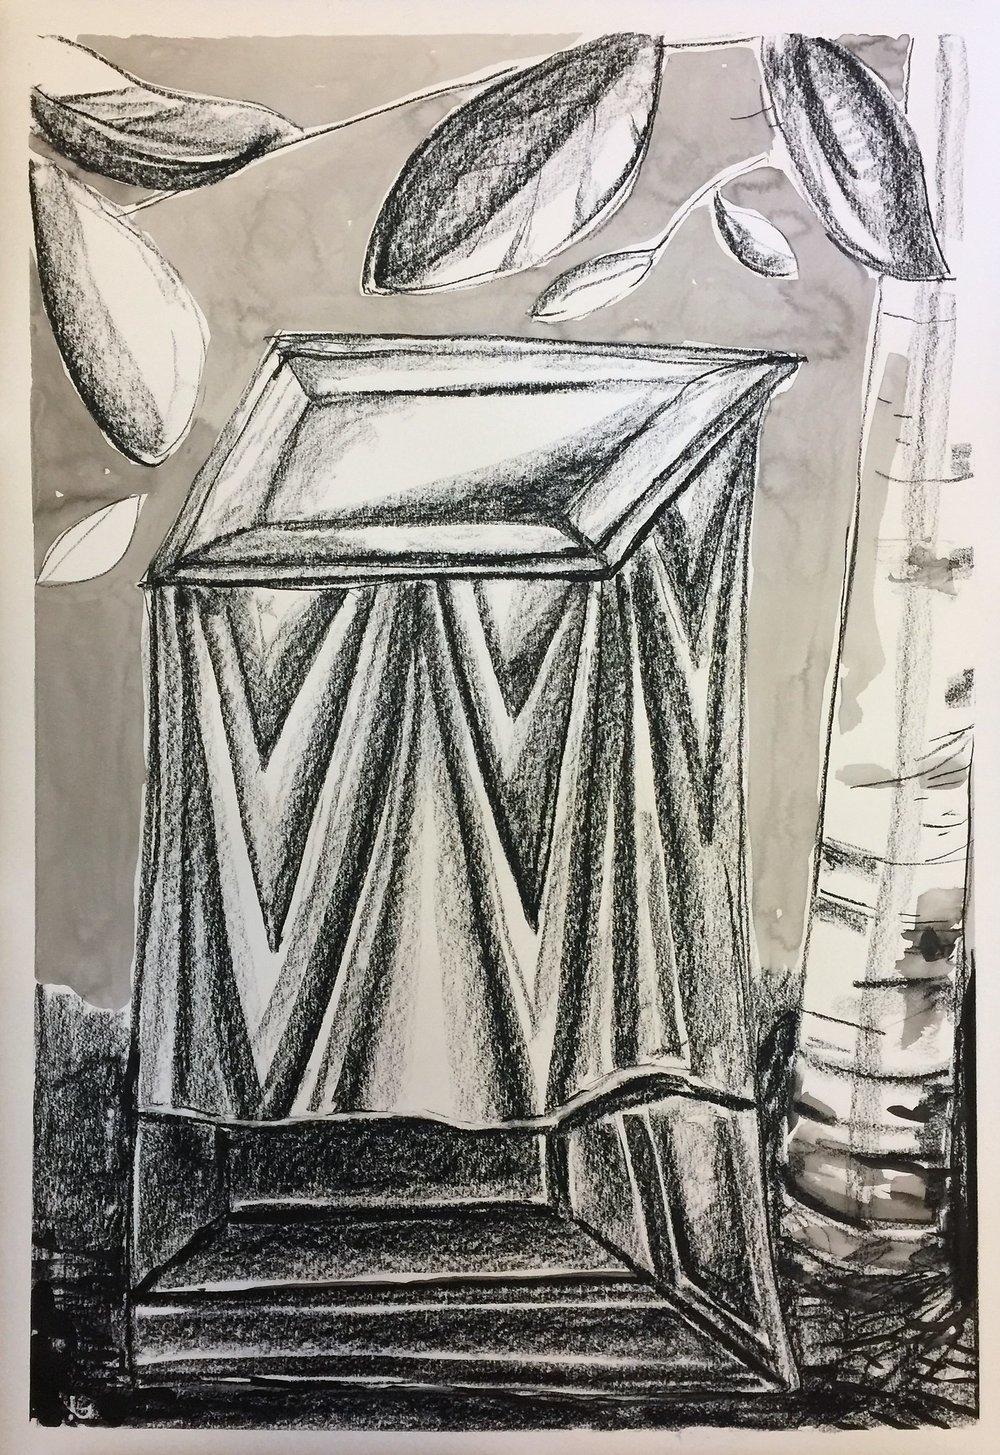 Altar, 2017 Ink and charcoal on paper 76 x 65.5 cm